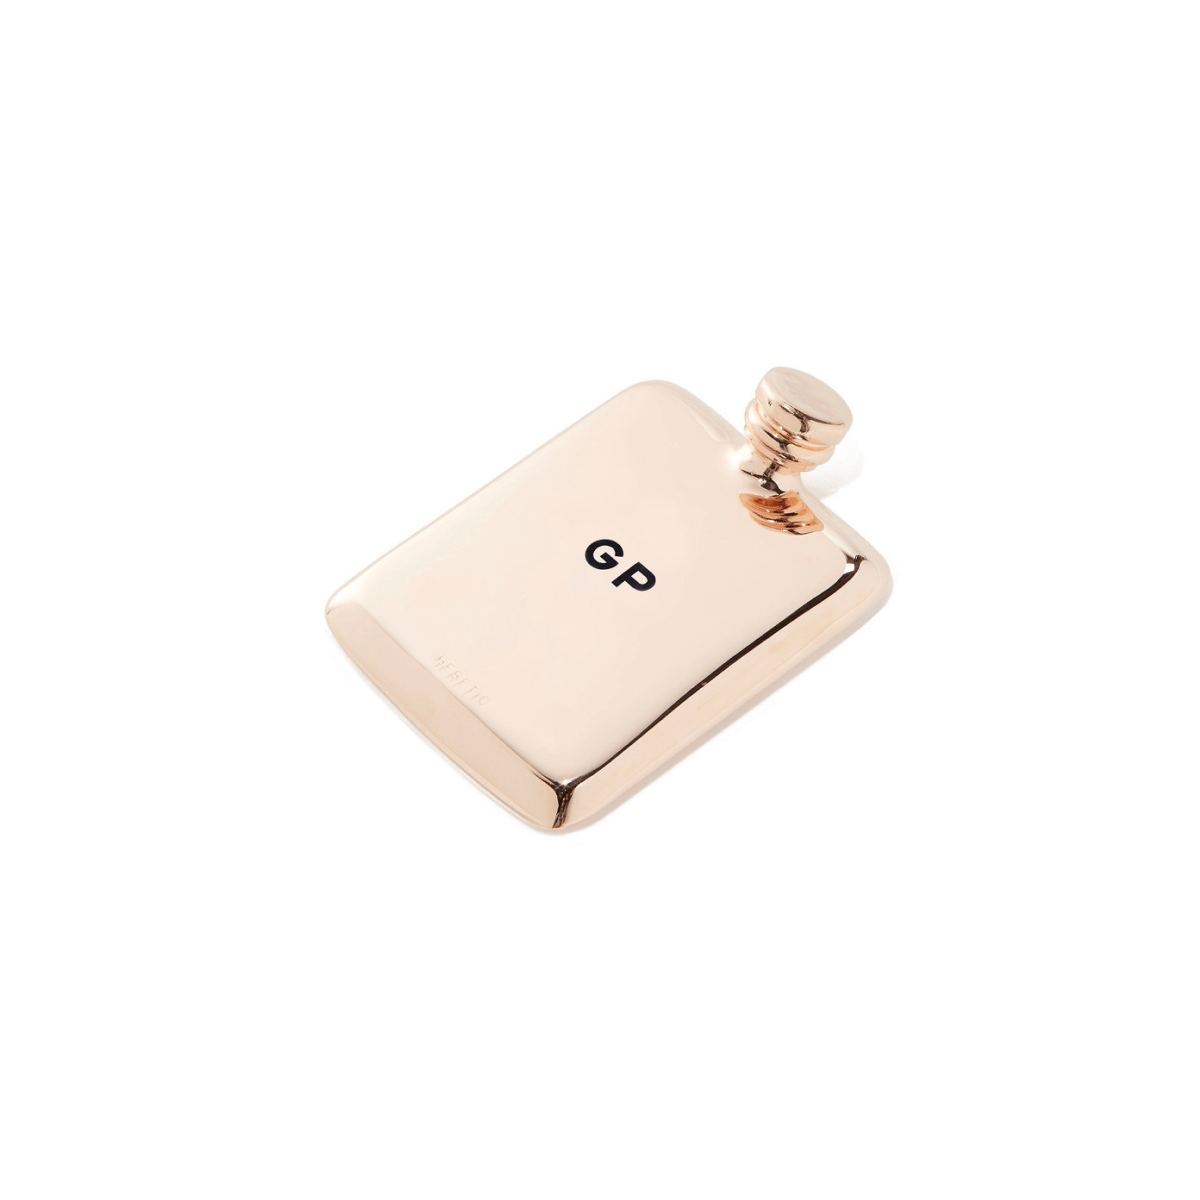 Heretic GOOP EXCLUSIVE 18K ROSE GOLD FRAGRANCE FLASK